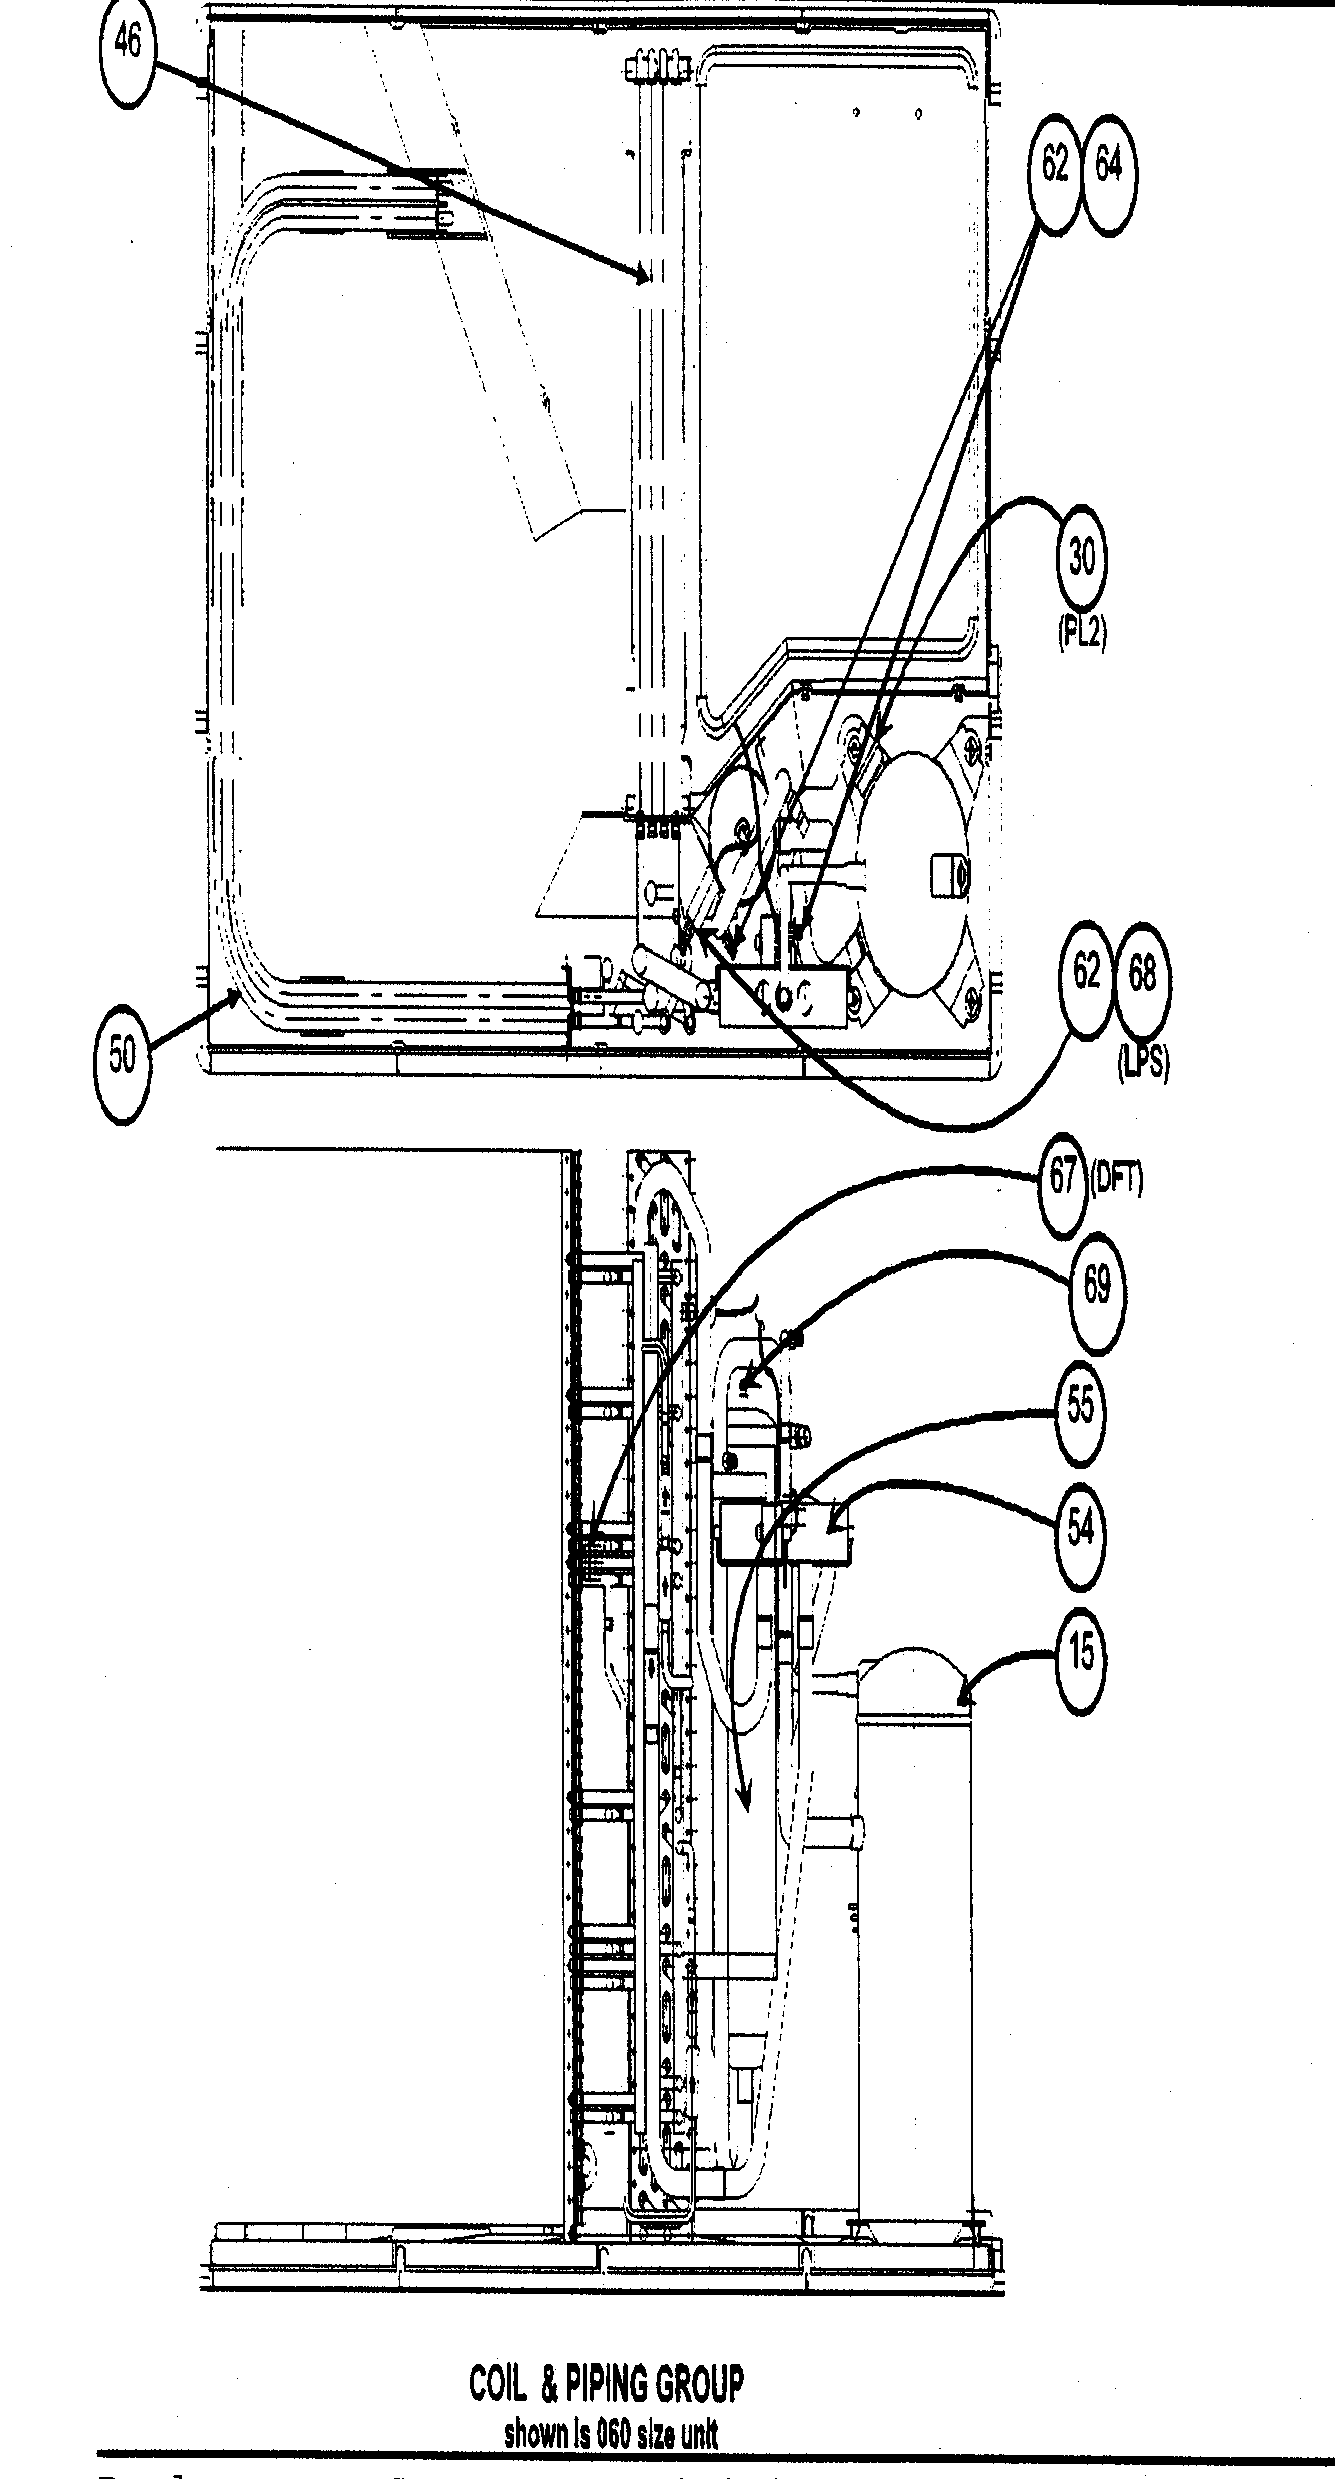 COIL/PIPING ASSY Diagram & Parts List for Model